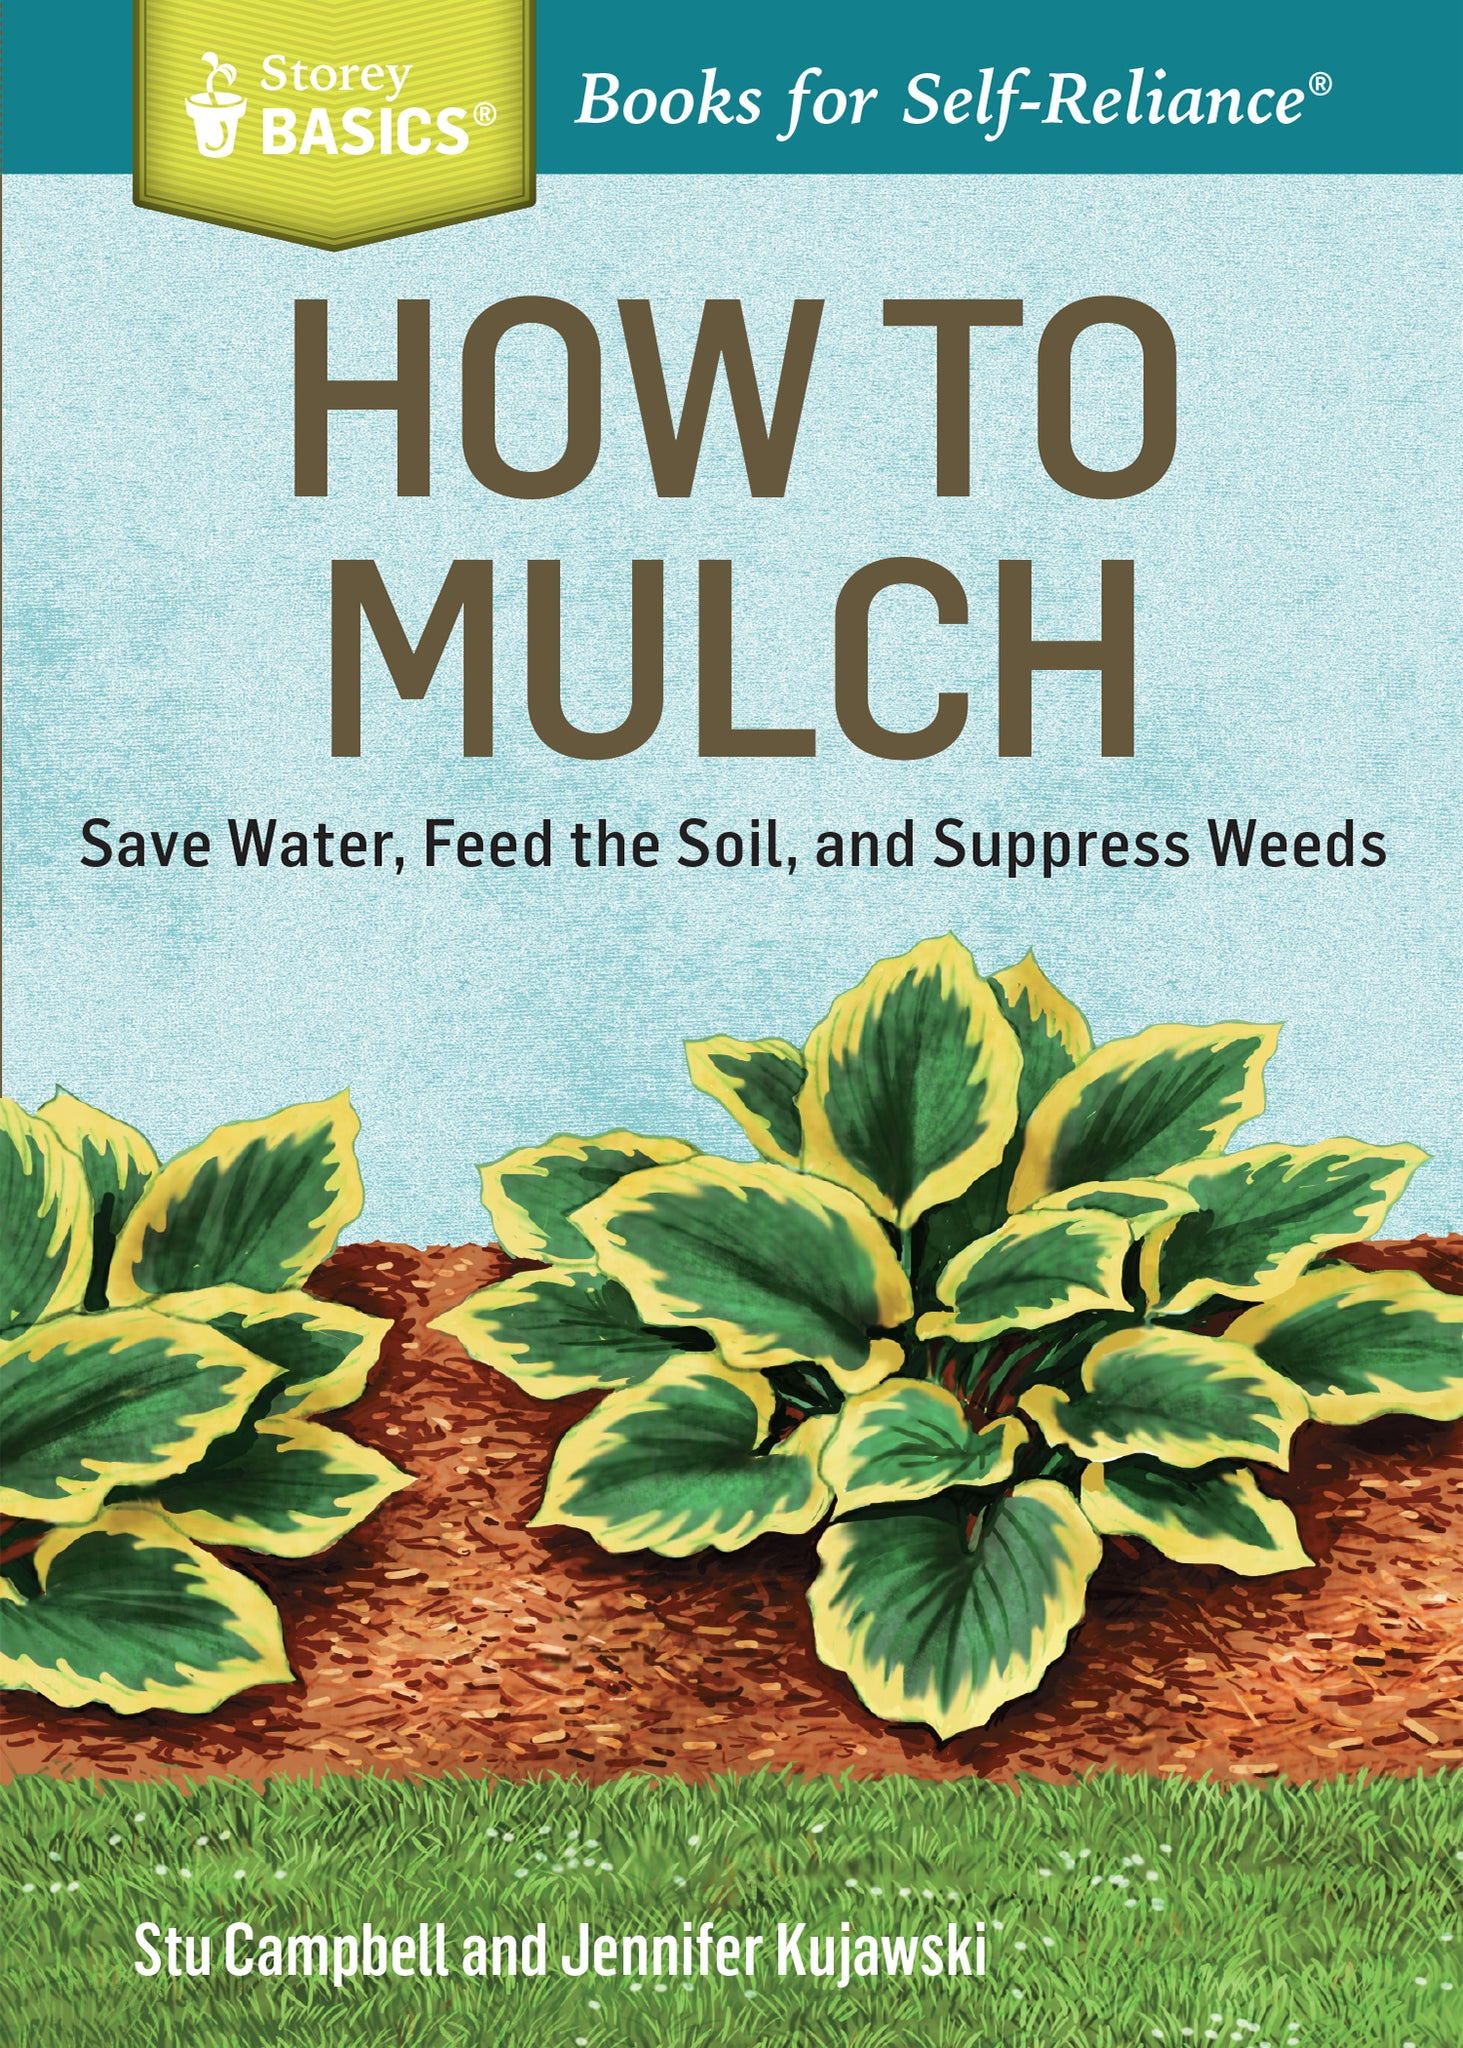 Book:  Basics:  How To Mulch by Stu Campbell and Jennifer Kujawski